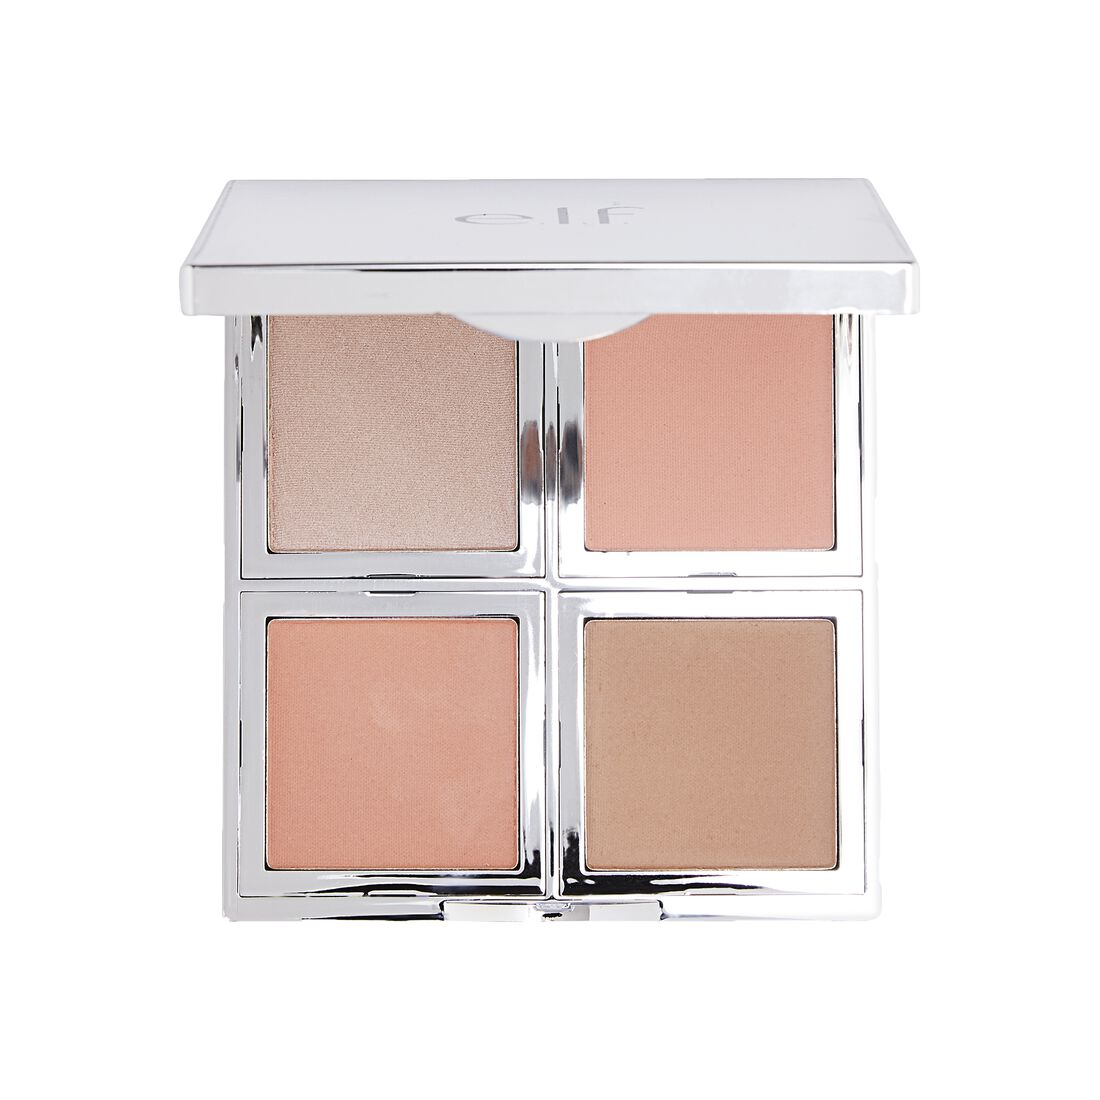 ELF Cosmetics Beautifully Bare Natural Glow Face Palette